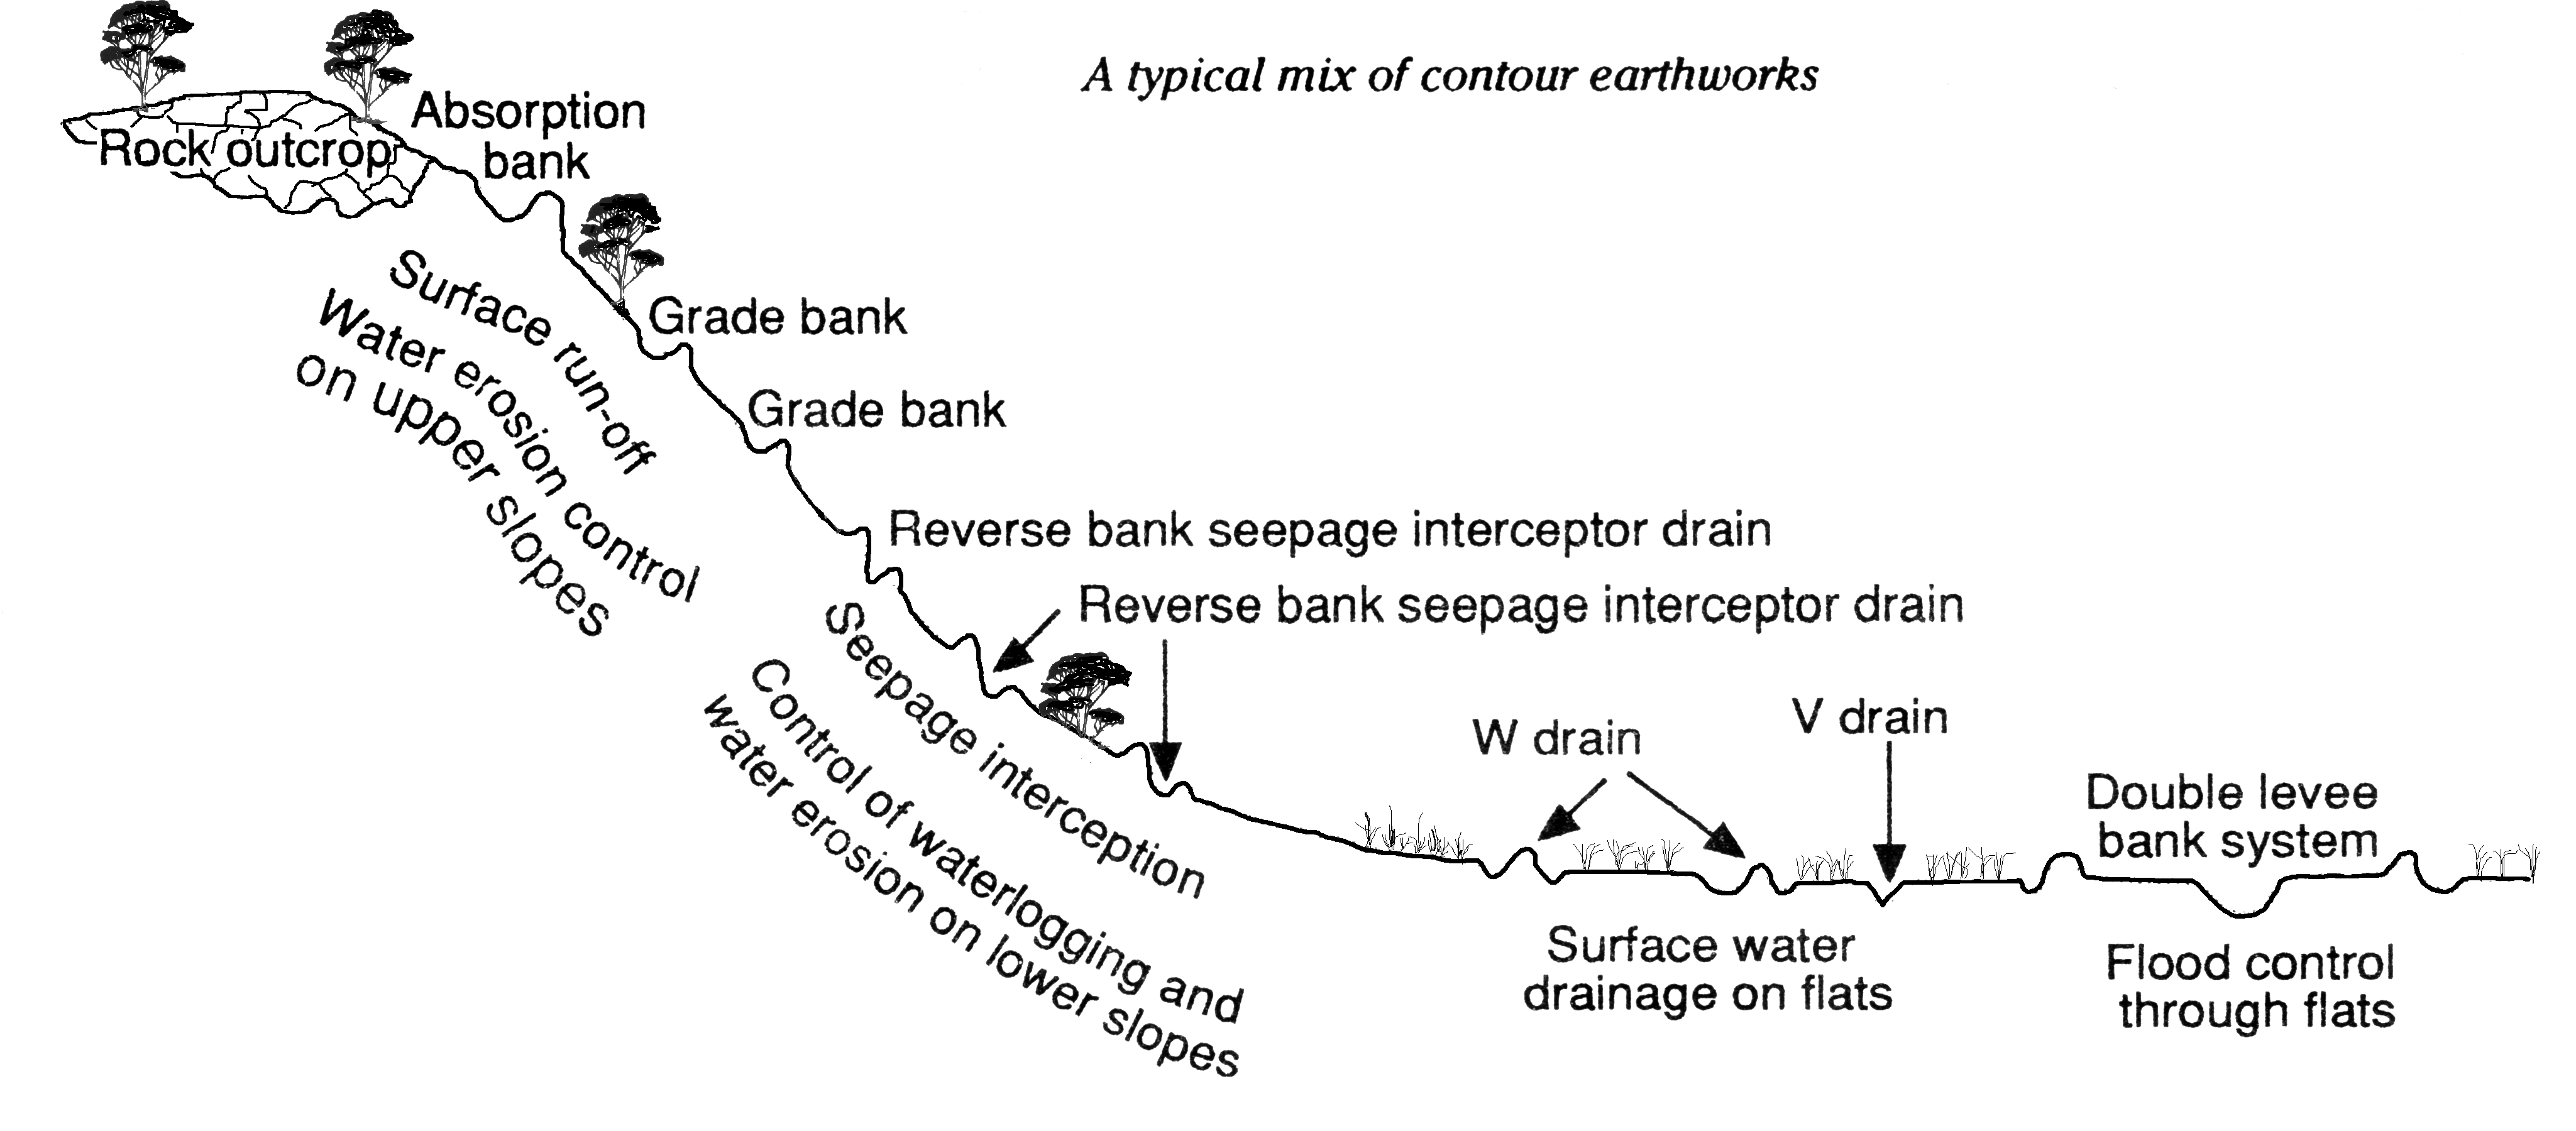 Landscape cross section showing where surface water earthwork options should be placed